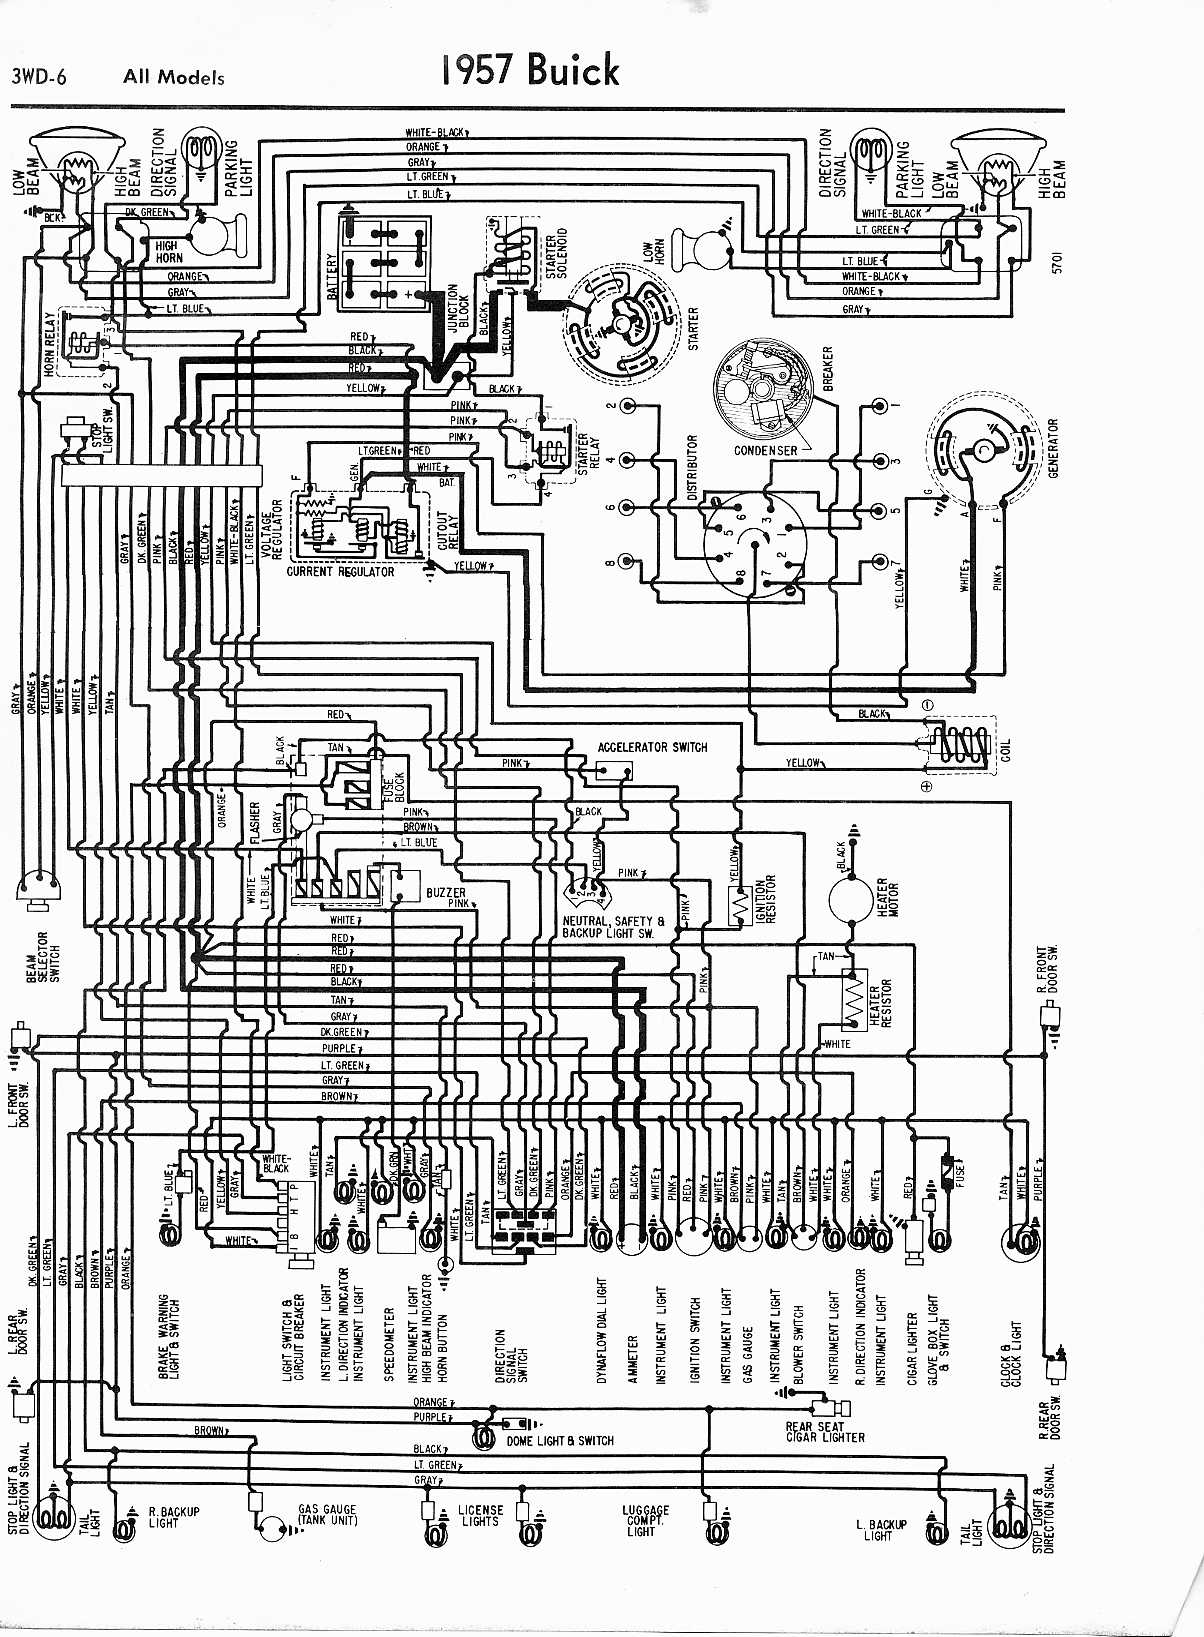 wiring diagram for 1960 buick manual engine schematics and wiring 1960 buick lesabre wiring diagram 1960 buick wiring diagram #3